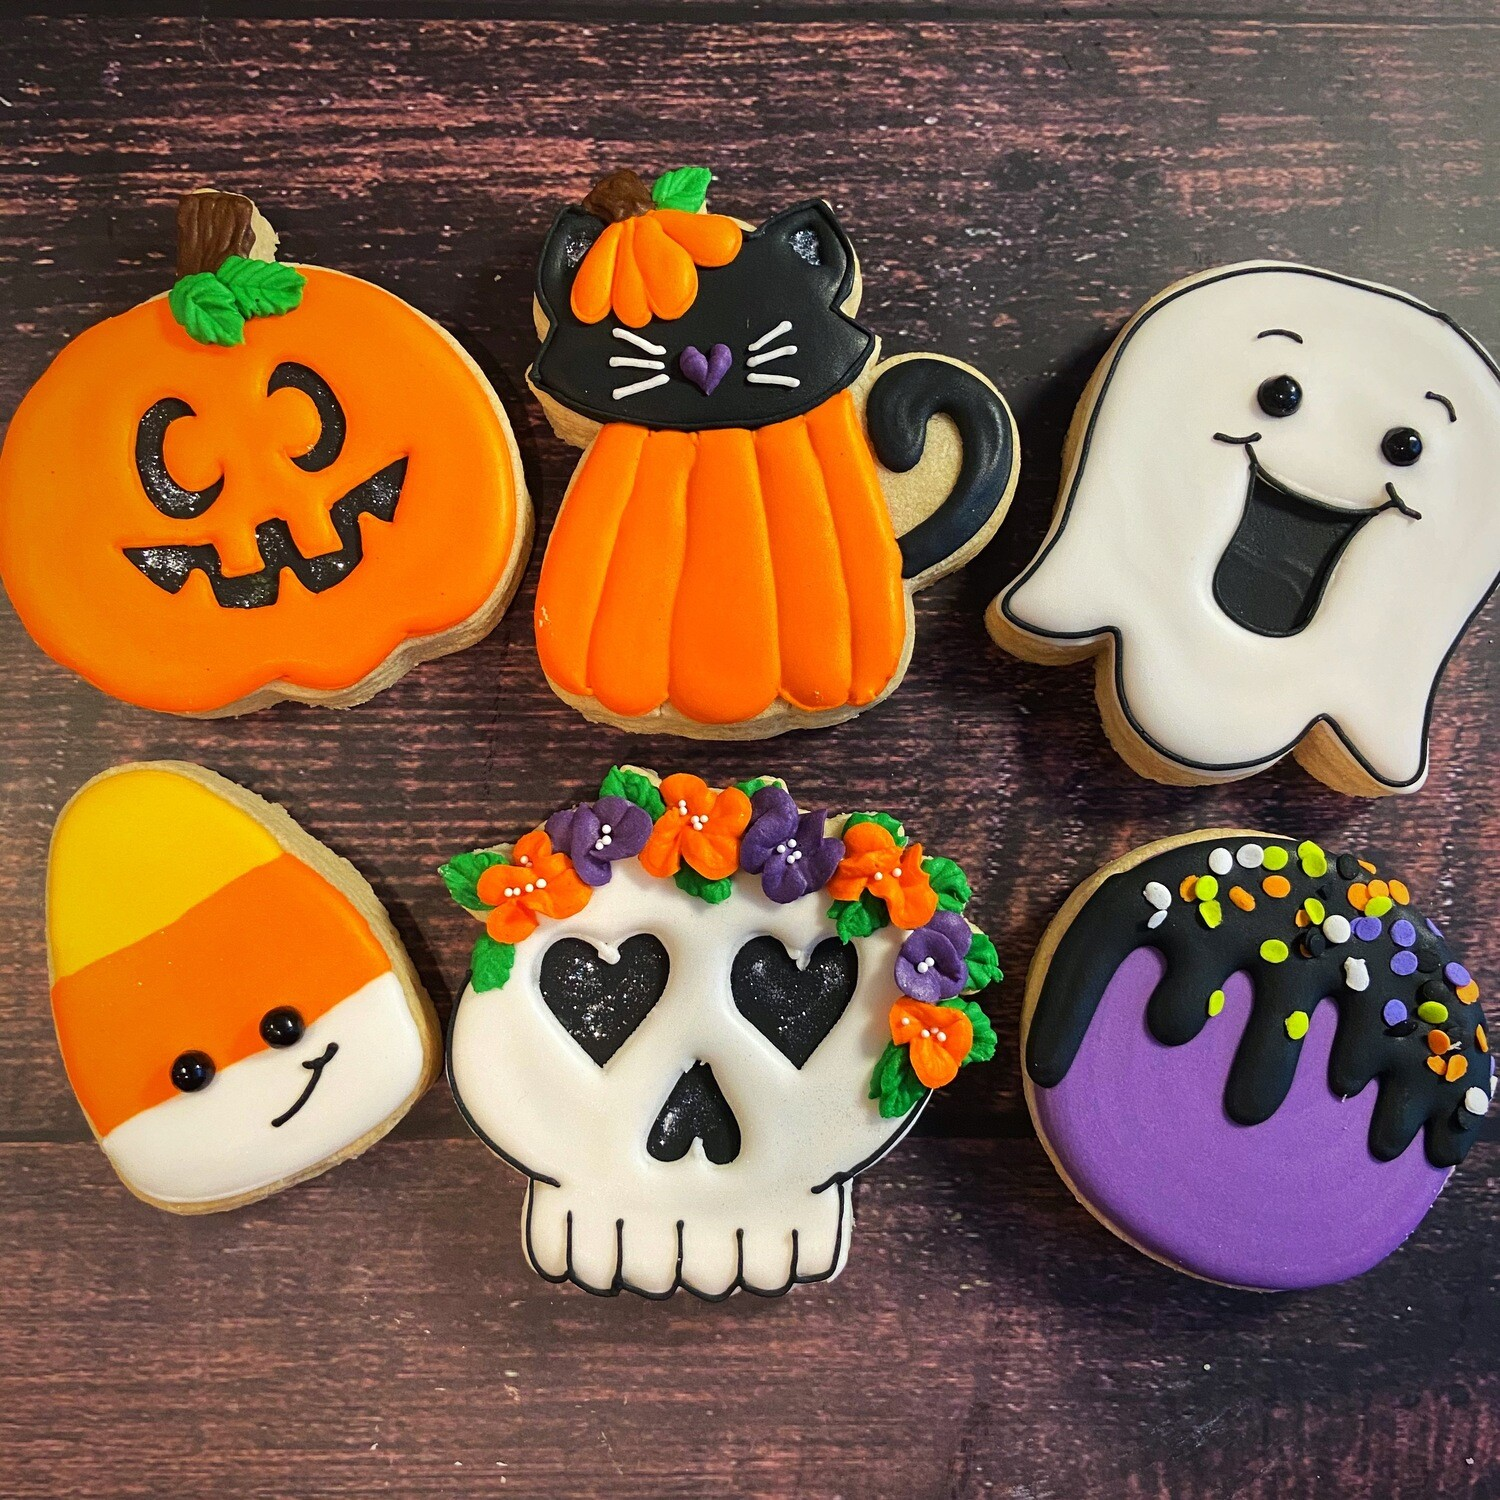 'Fun Spooks Decorating Workshop - FRIDAY, OCTOBER 16th at 7:00 p.m. (THE COOKIE DECORATING STUDIO)